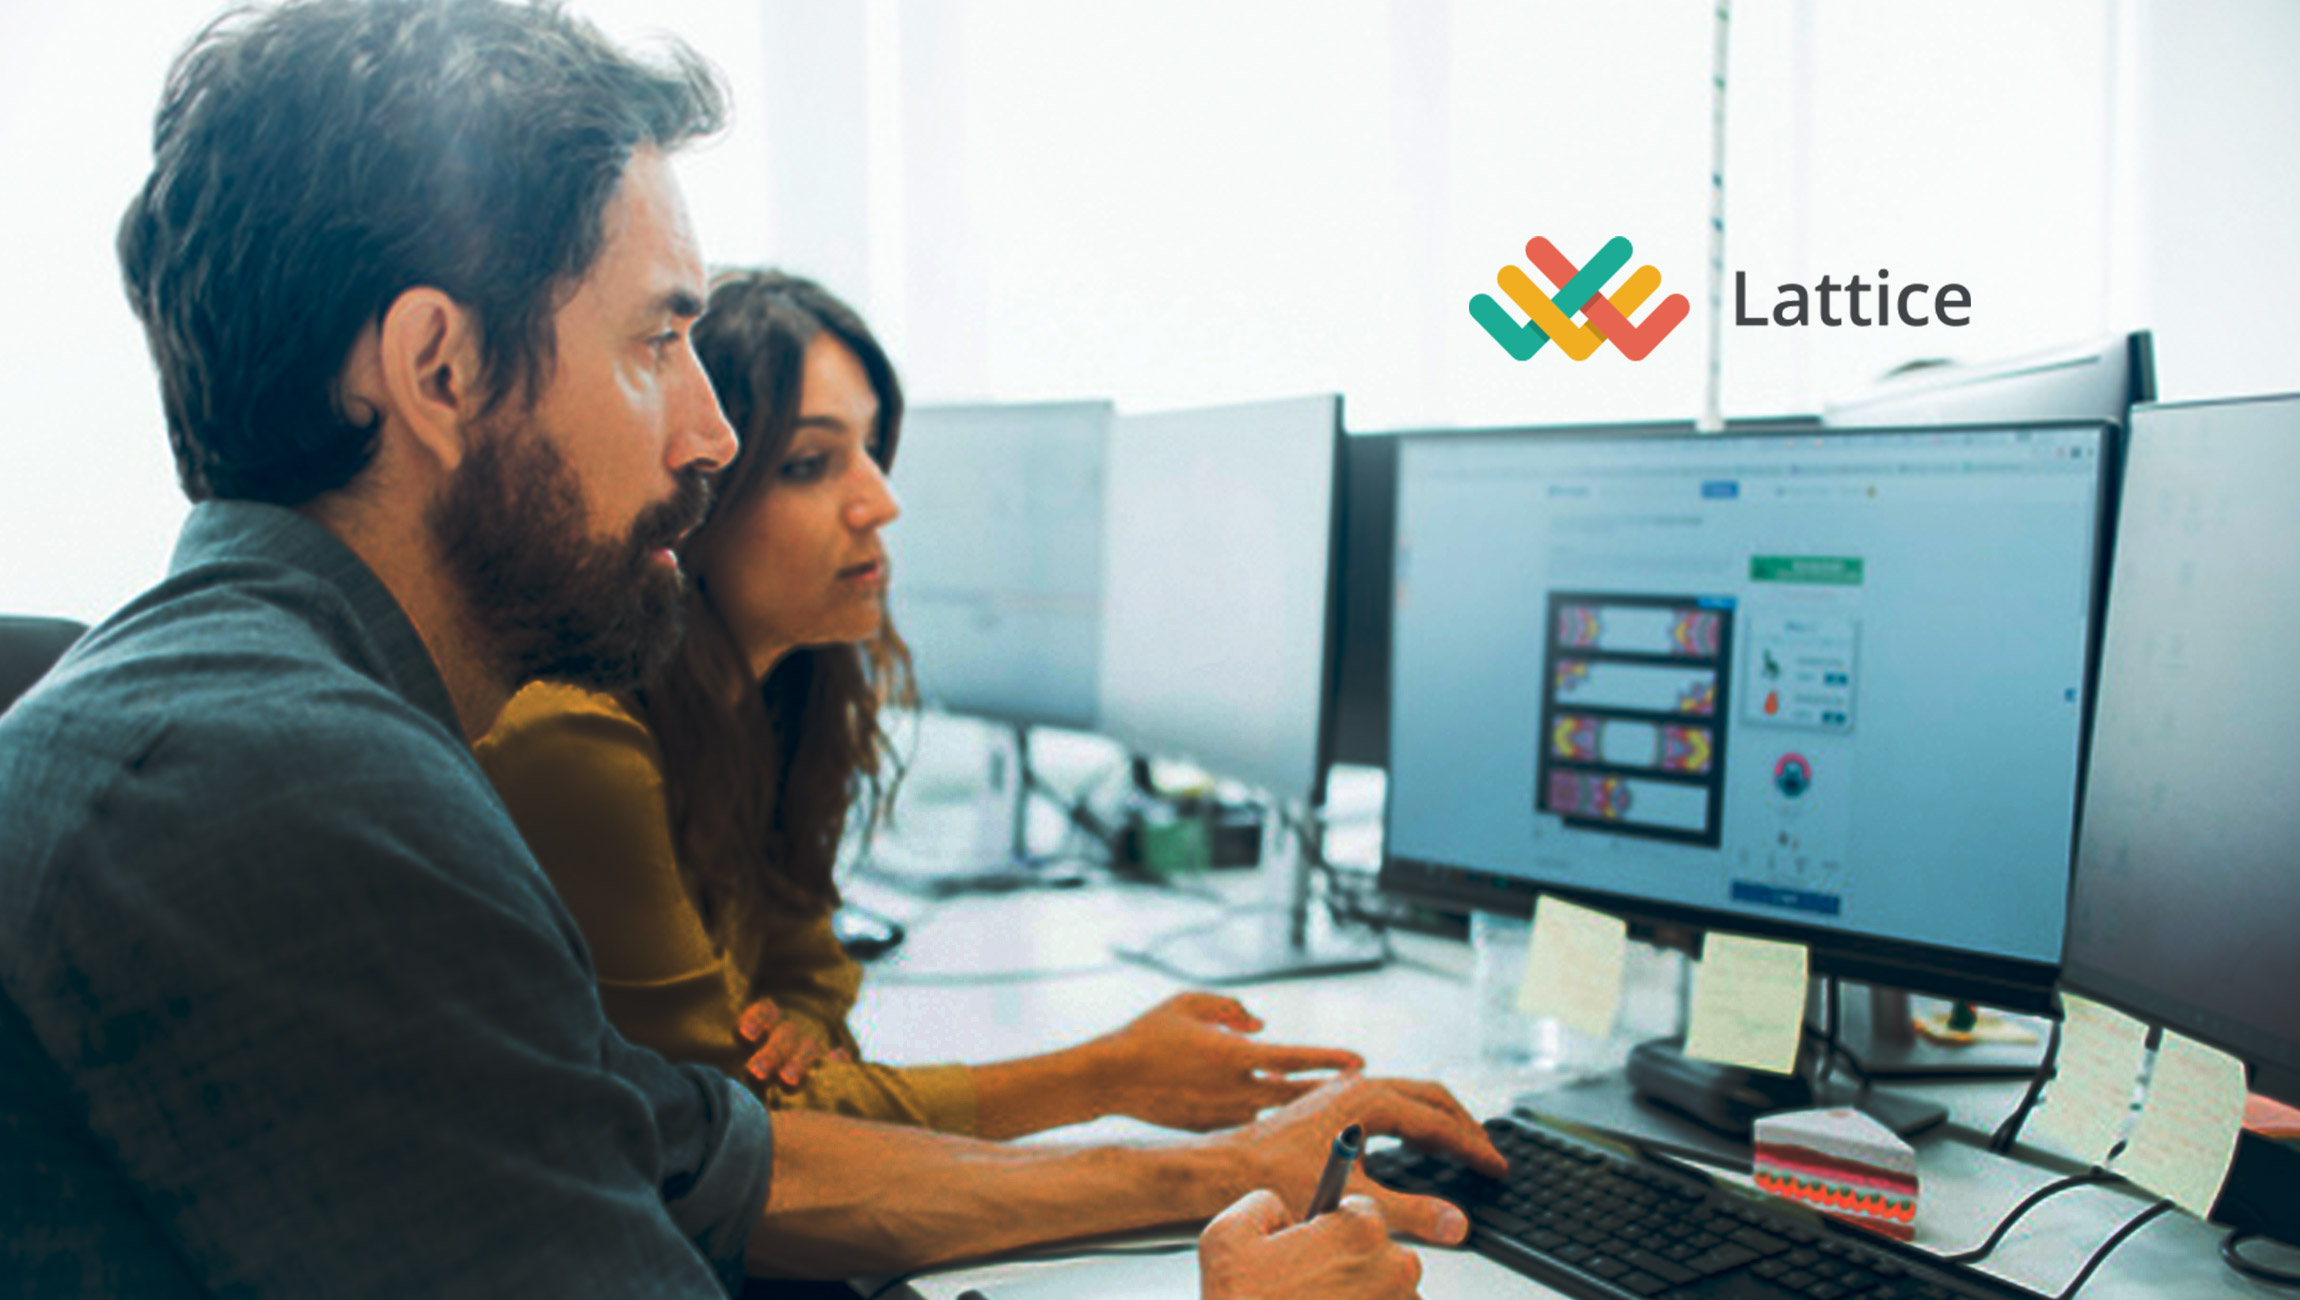 Lattice Announces Innovative Goals and Compensation Products to Tie Employee Success to Business Impact and Bridge the Gap Between People Operations and Business Operations